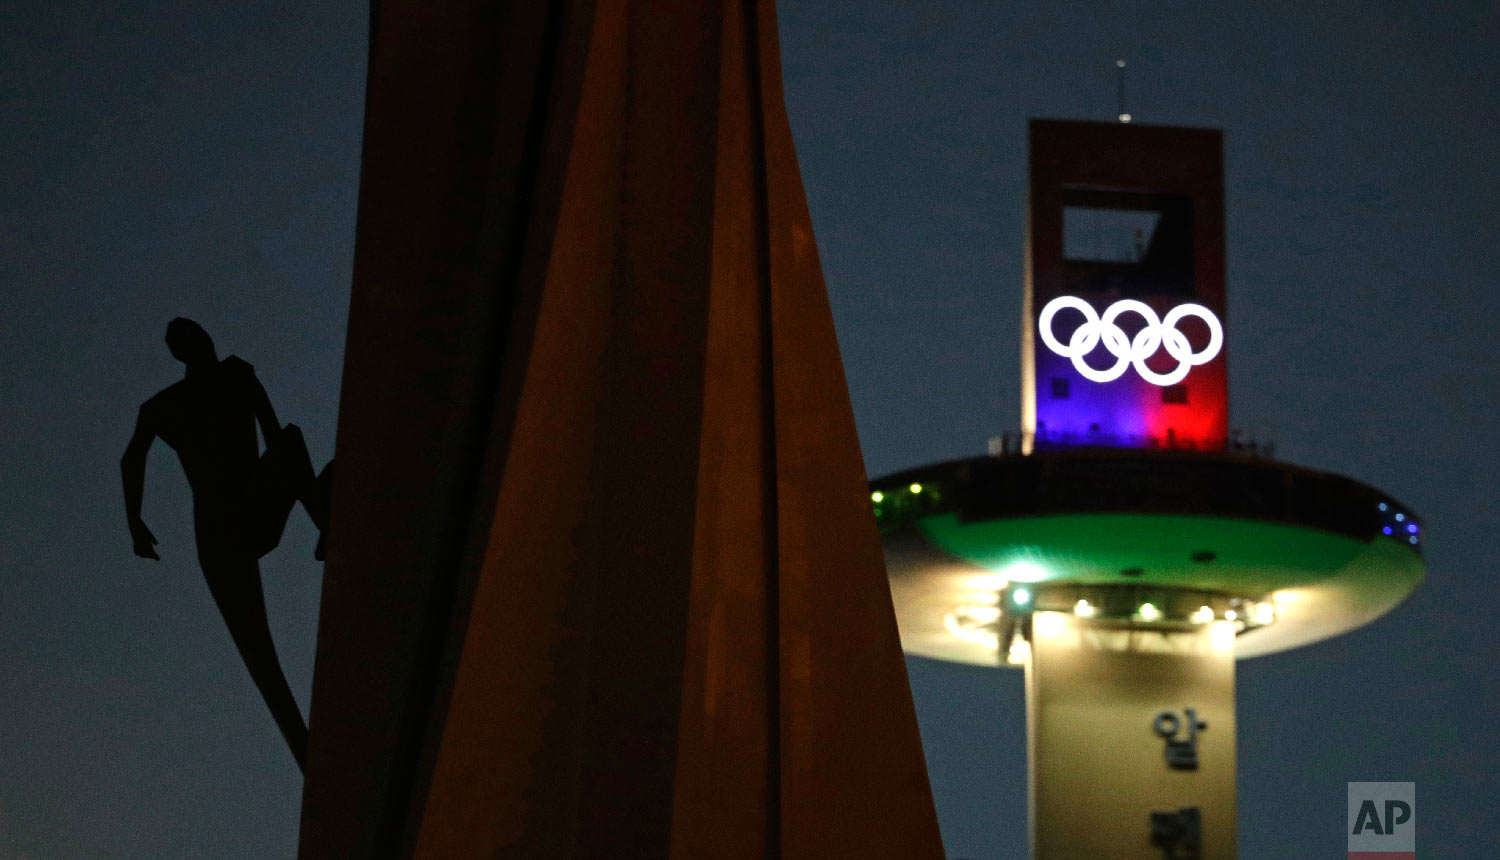 A human figure appears to be climbing an Olympic Cauldron at the Pyeongchang Olympic Plaza as preparations continue for the 2018 Winter Olympics in Pyeongchang, South Korea, Sunday, Feb. 4, 2018. (AP Photo/Charlie Riedel)